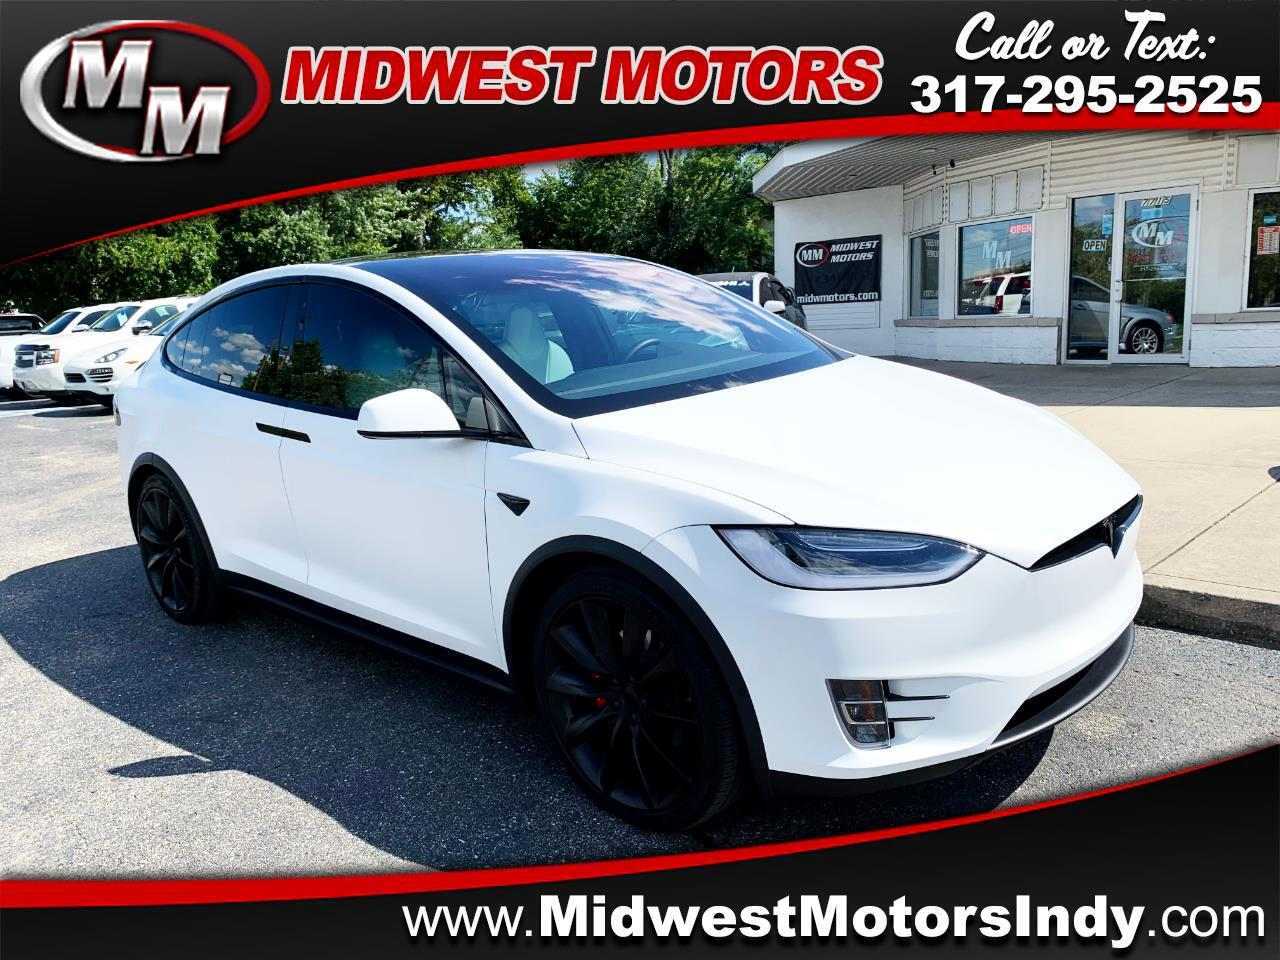 Used Cars Indianapolis >> Used Cars Indianapolis In Used Cars Trucks In Midwest